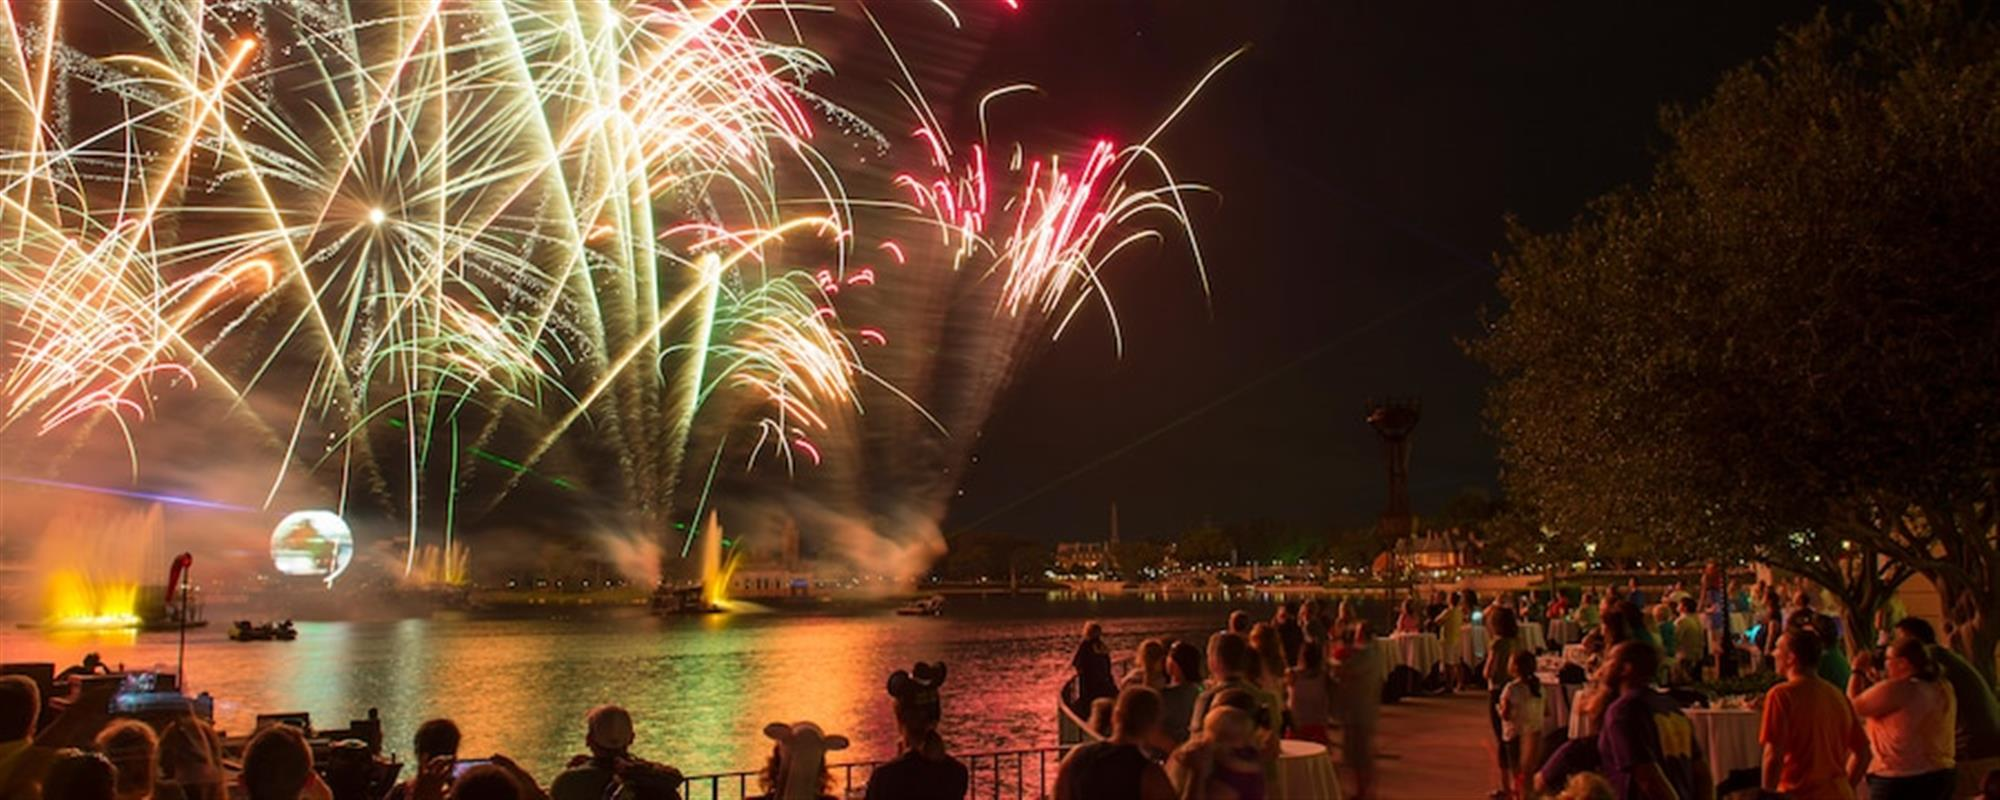 IllumiNations: Reflections of Earth to End September 30th